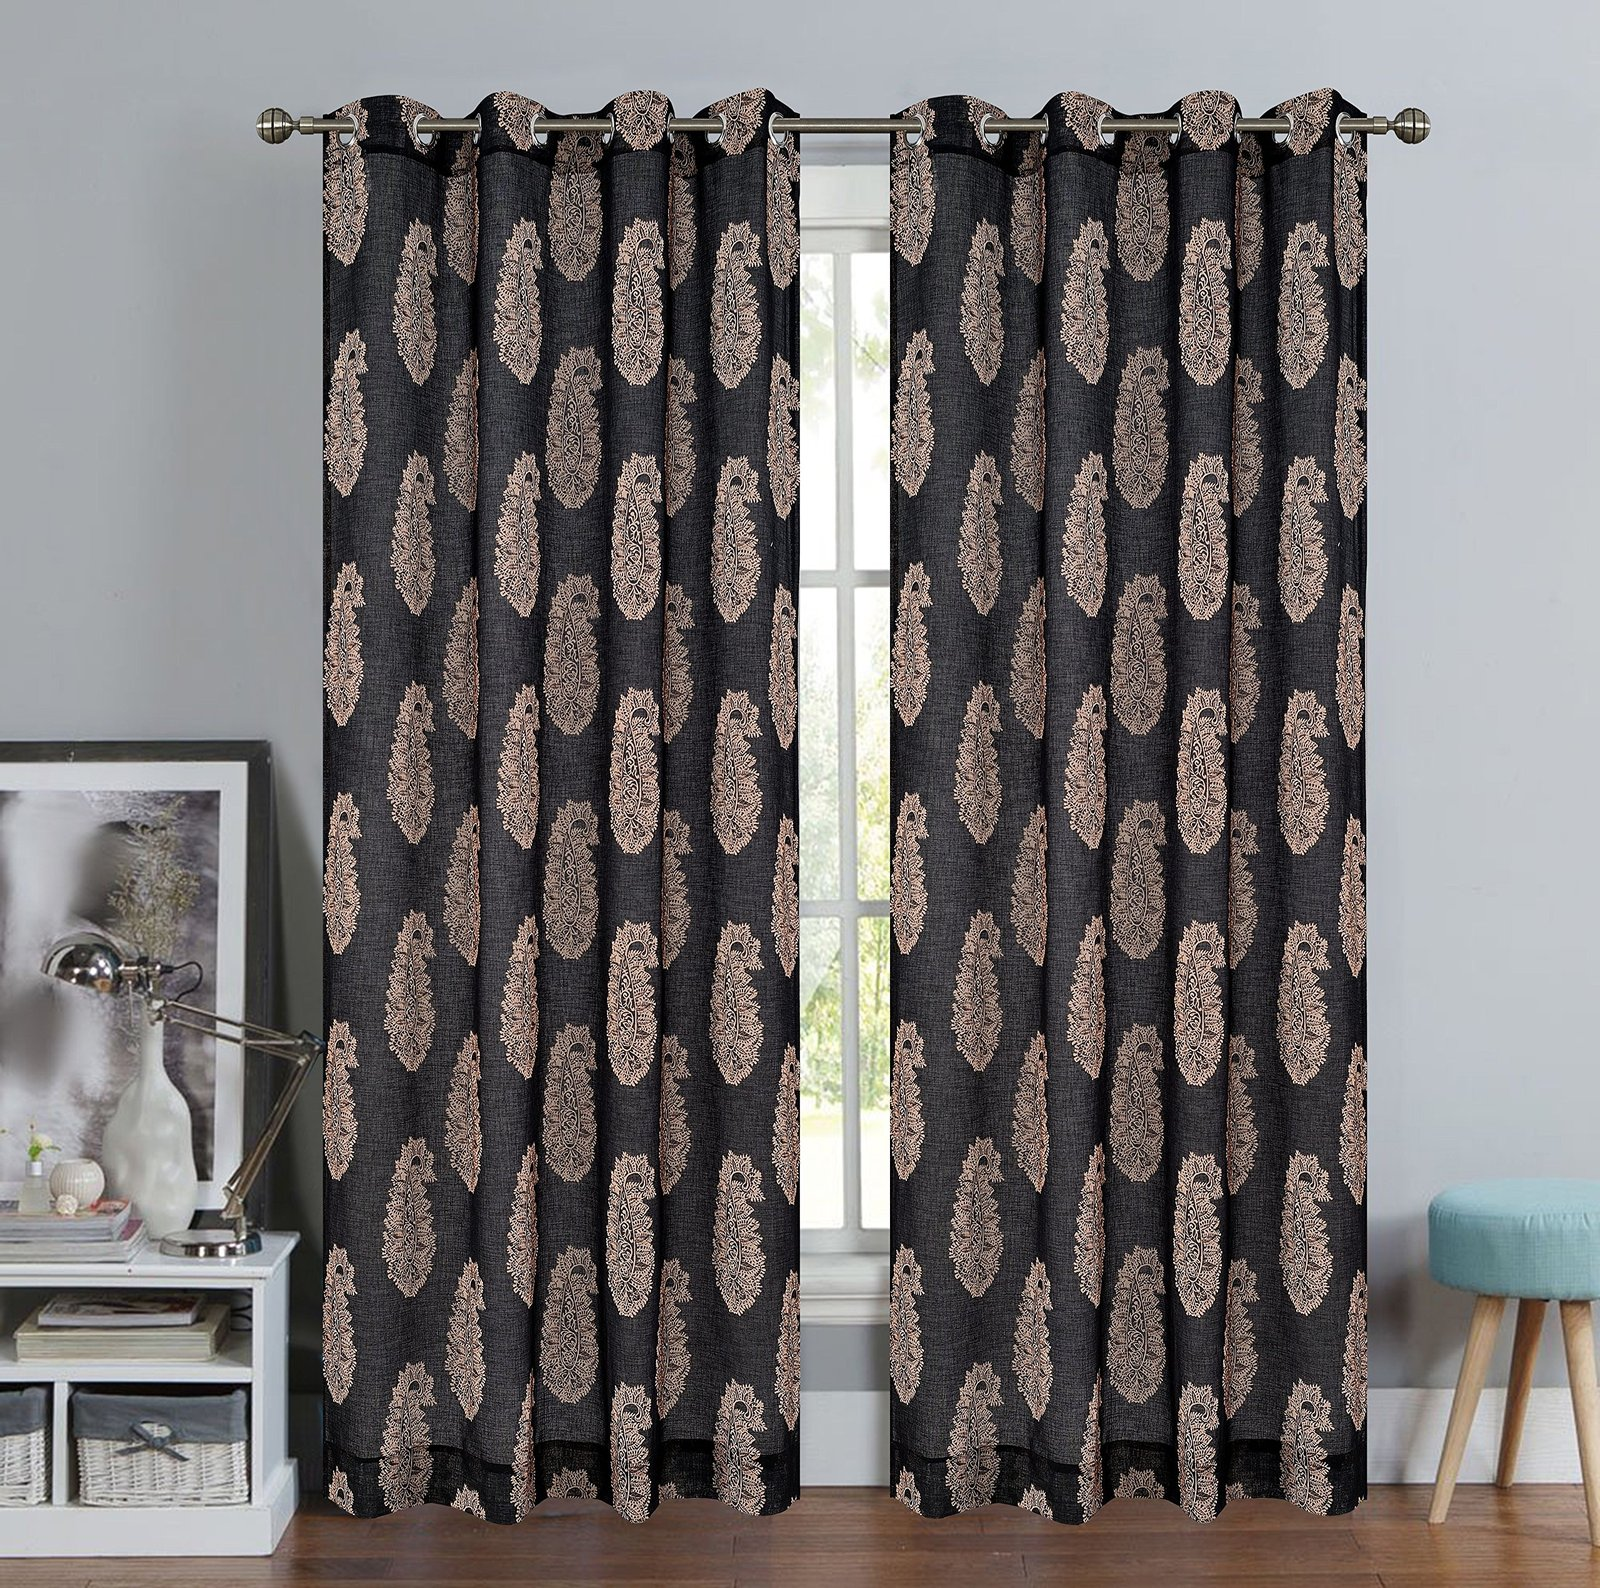 Urbanest 54-inch by 96-inch Paisley Set of 2 Faux Linen Sheer Drapery Curtain Pa